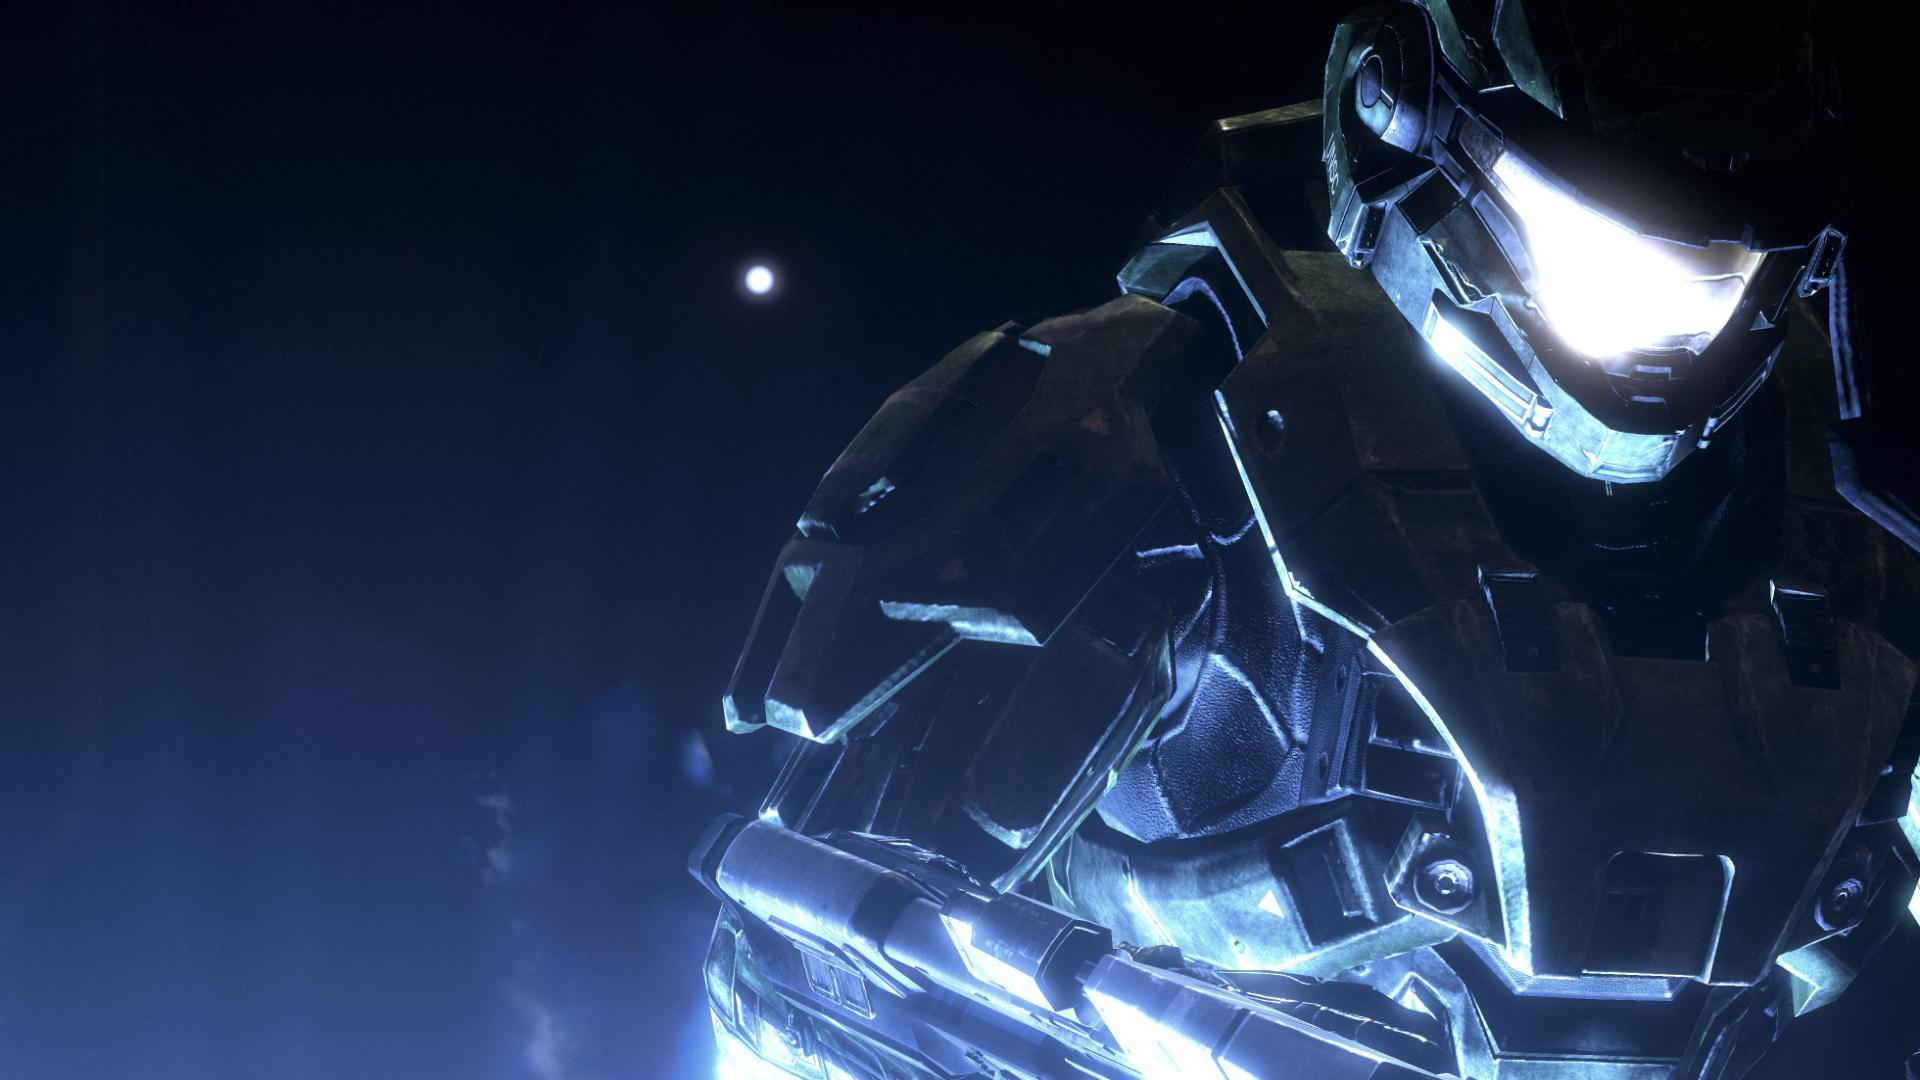 wallpaper hd halo wallpaper hd halo 5 wallpaper 1920x1080 halo 5 1920x1080